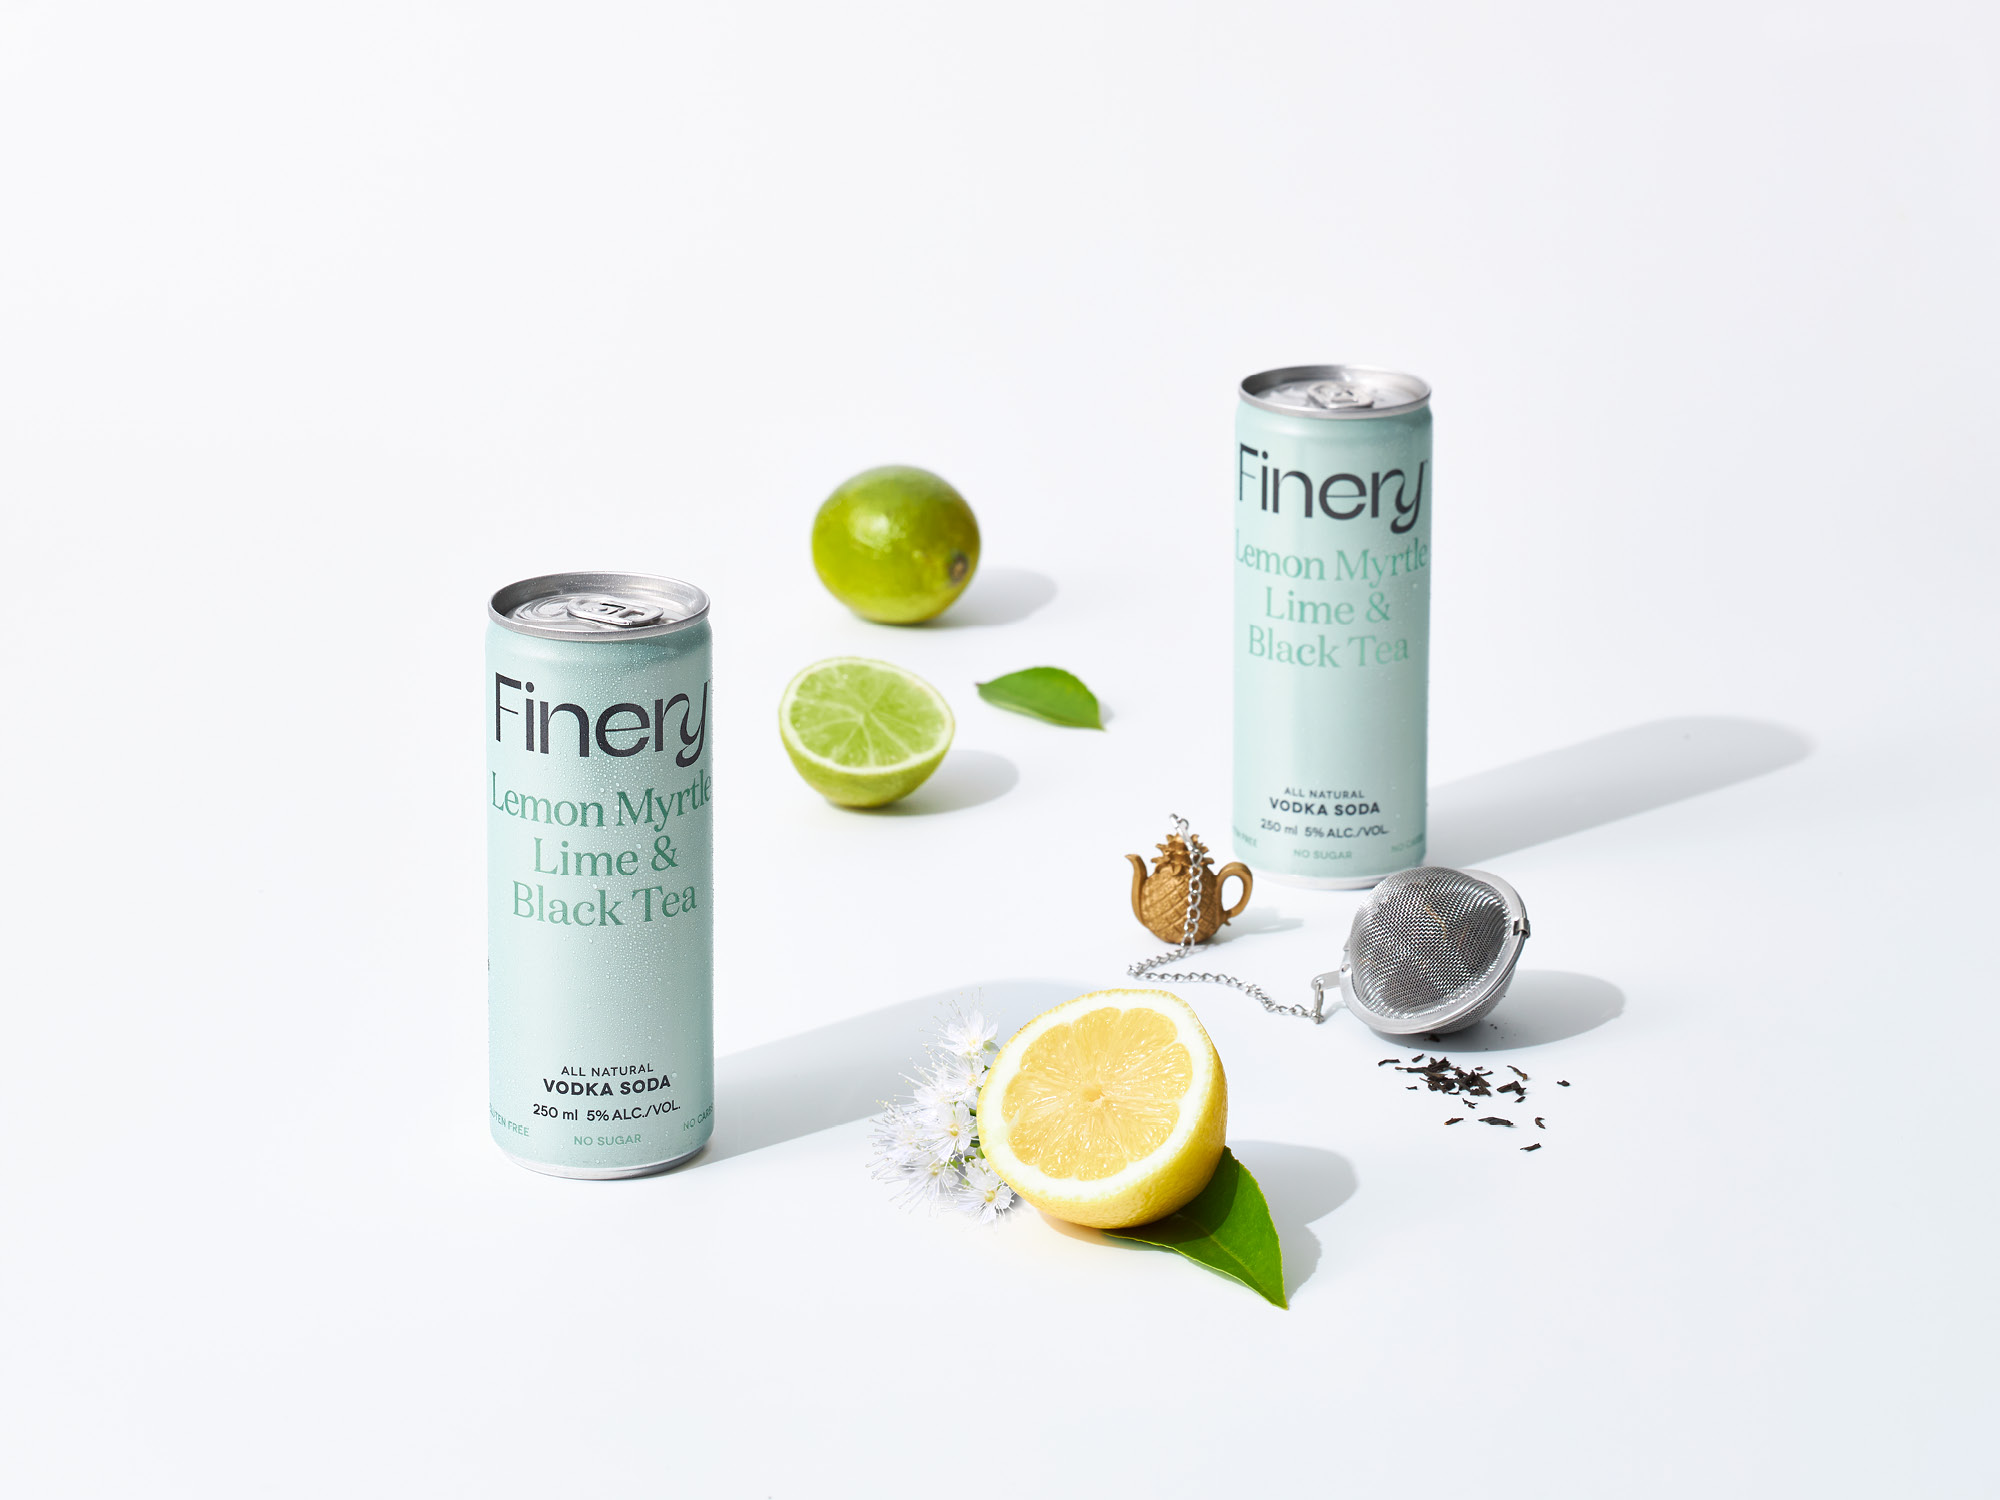 onfire design finery vodka soda branding packaging 16